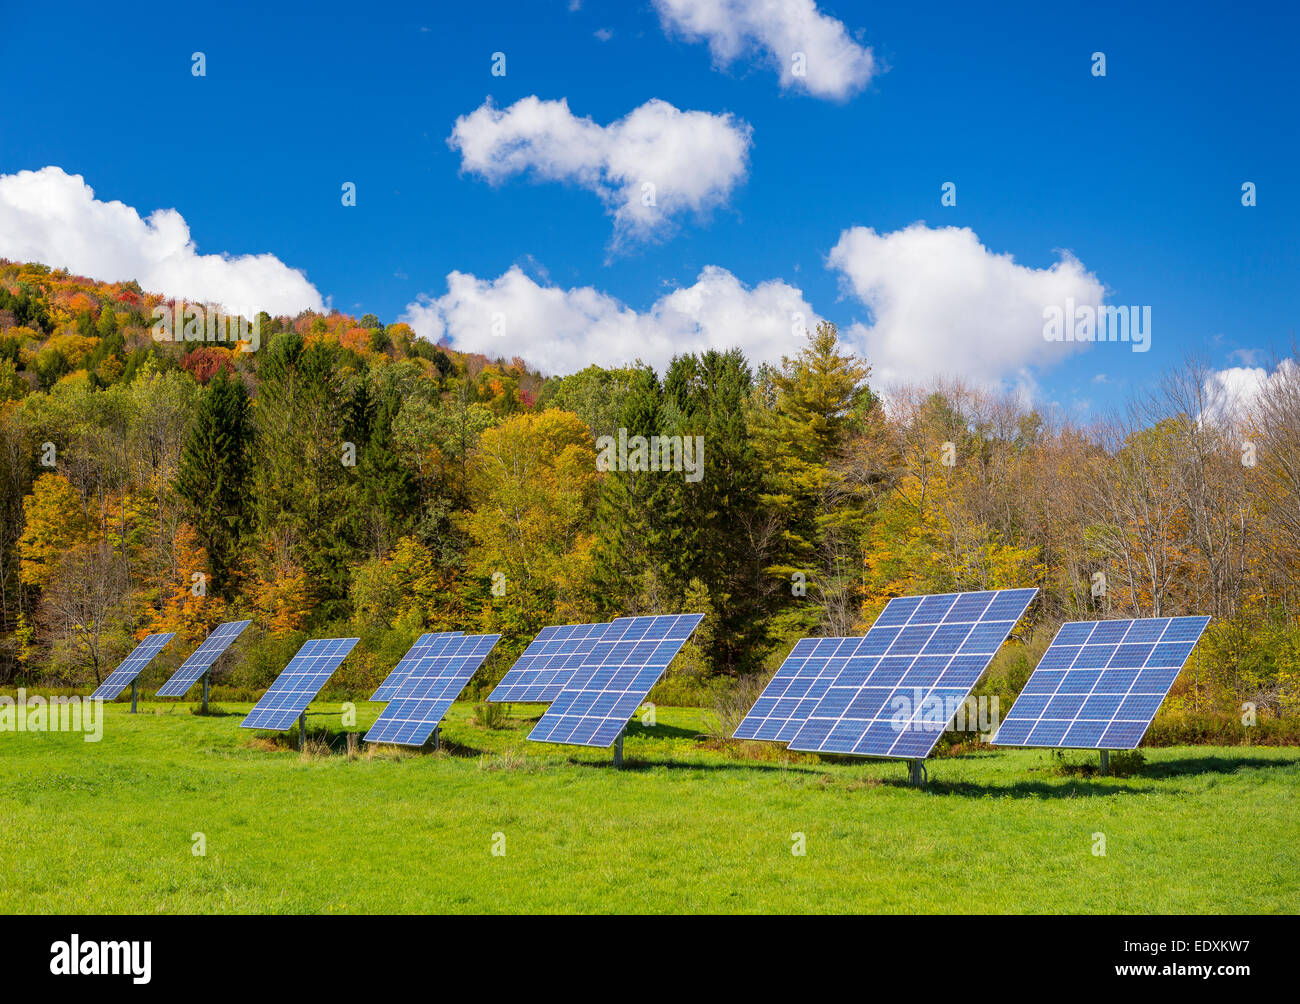 IRASVILLE, VERMONT, USA - Solar power panels in field, Mad River Valley. Alternative energy. - Stock Image